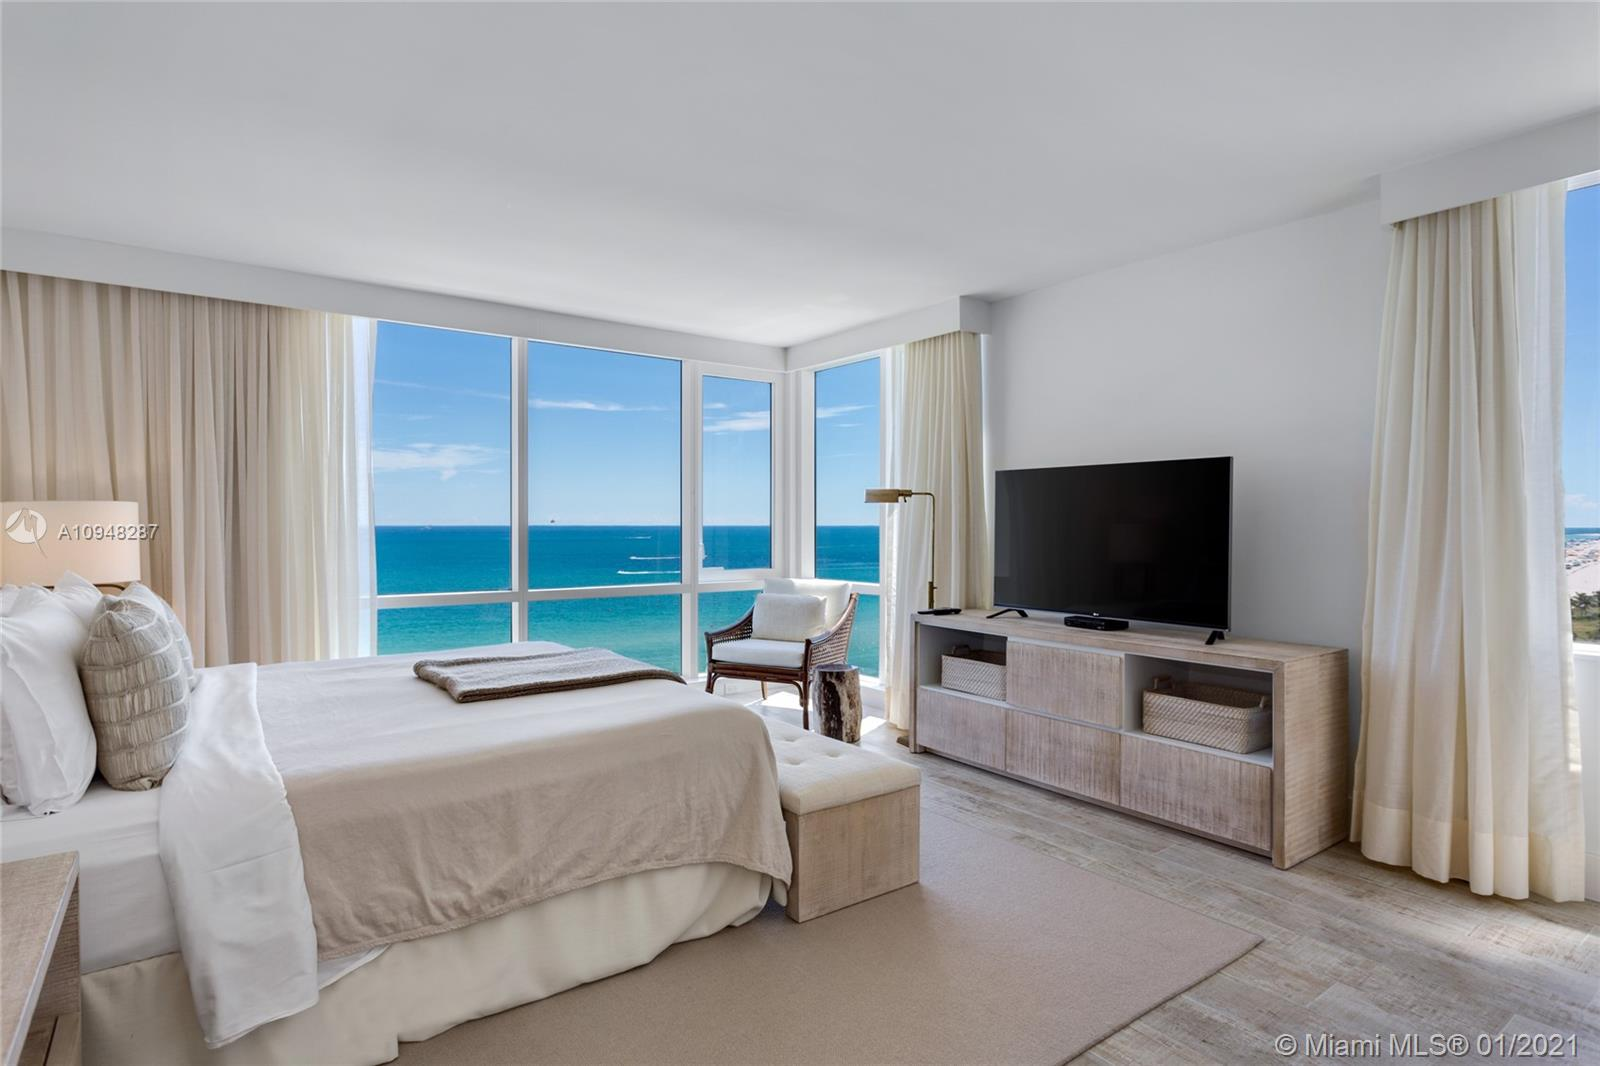 Stunning direct ocean views from the best line in the building! 2 bedrooms, 2 bathrooms, this corner unit is immaculately furnished by acclaimed designer, Debora Aguiar! Full kitchen, oversized living room, and bedrooms.Hotel living with private rooftop pool,bar & sand filled lounges.Restaurants serving the finest in organic cuisine.Private resident's lobby,concierge & chauffeured Tesla.600 linear ft. of beachfront,4 pools,14,000 sqft fitness center,Bamford Spa,beach & pool service,valet & more.